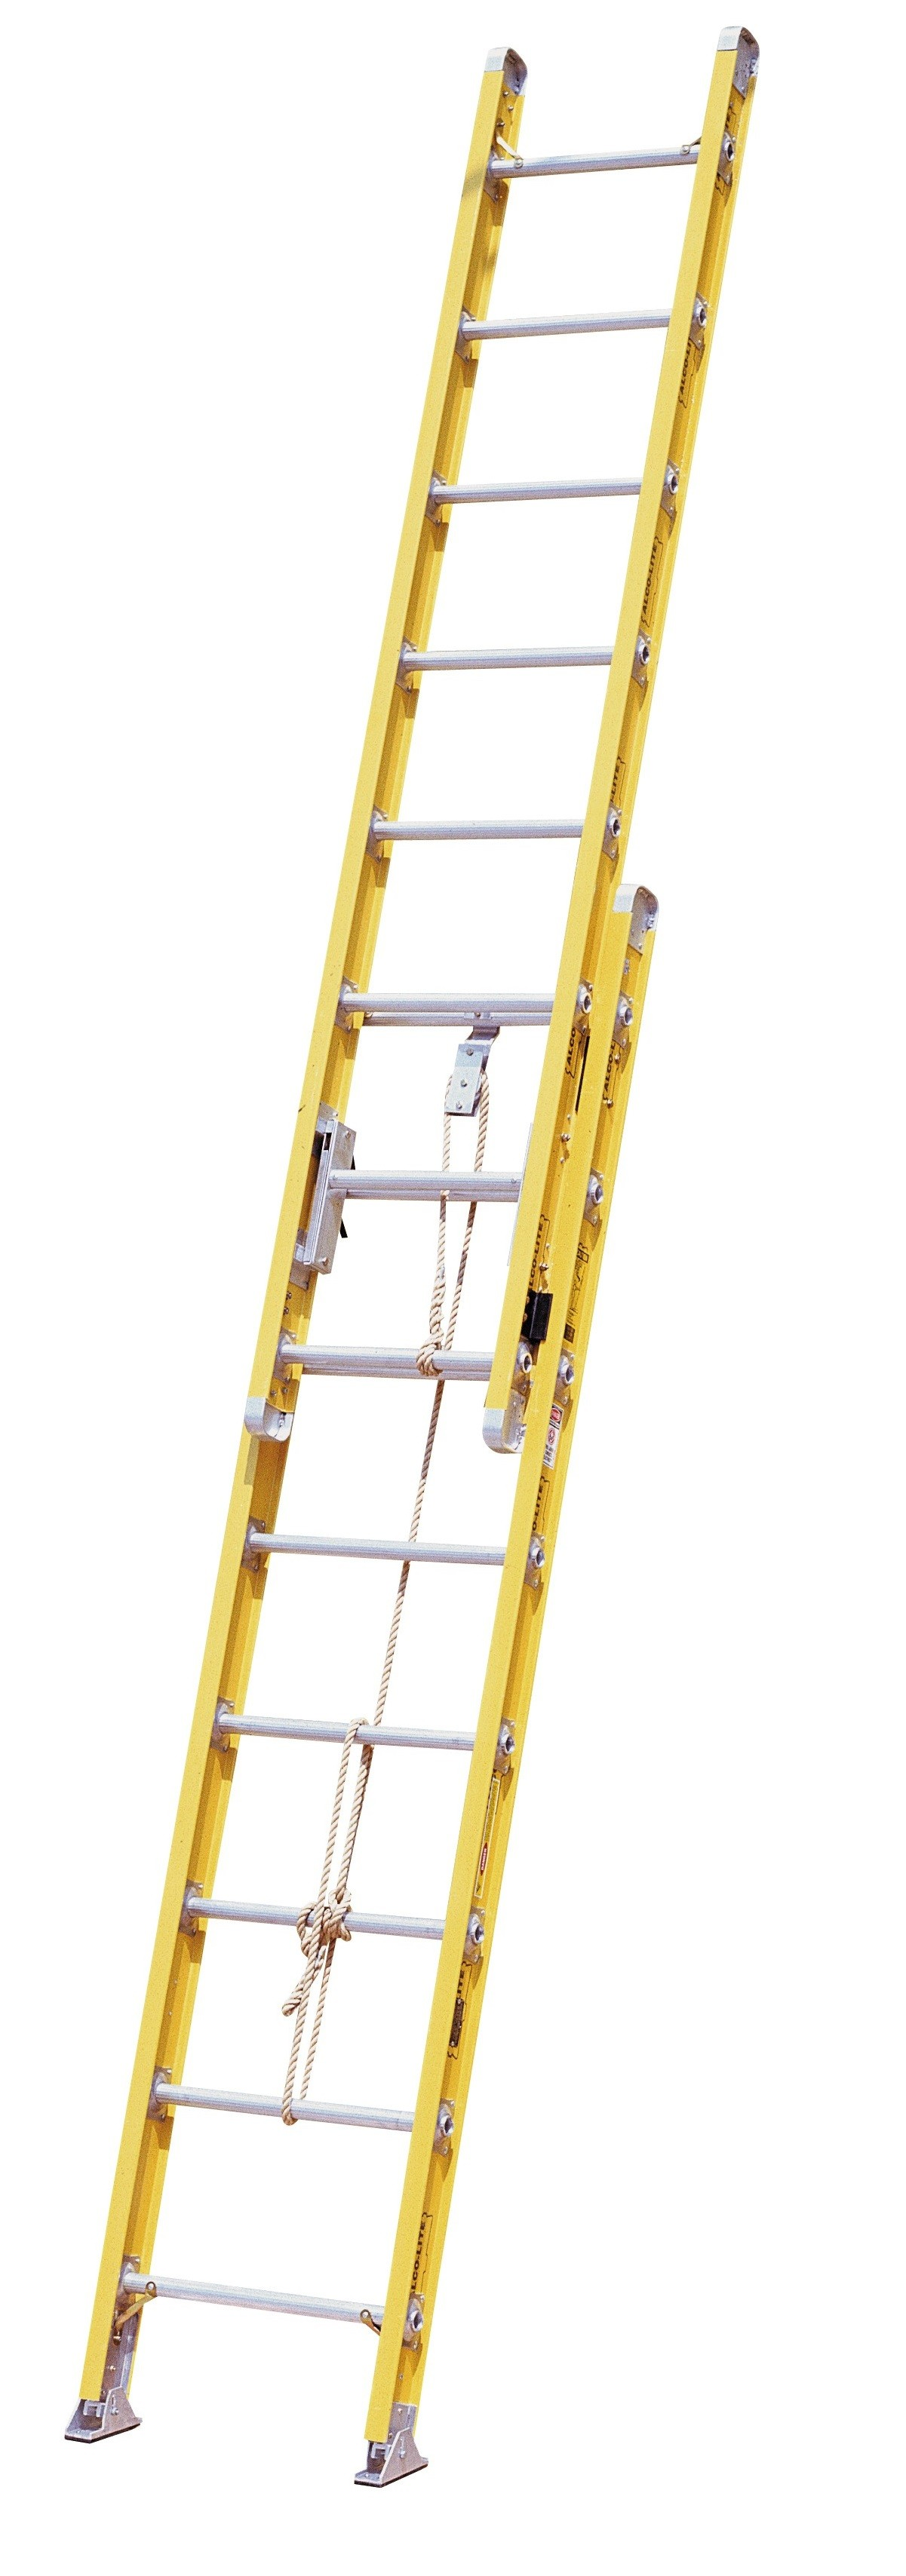 Extension Ladder Parts : Calico ladders ind f fiberglass extension ladder